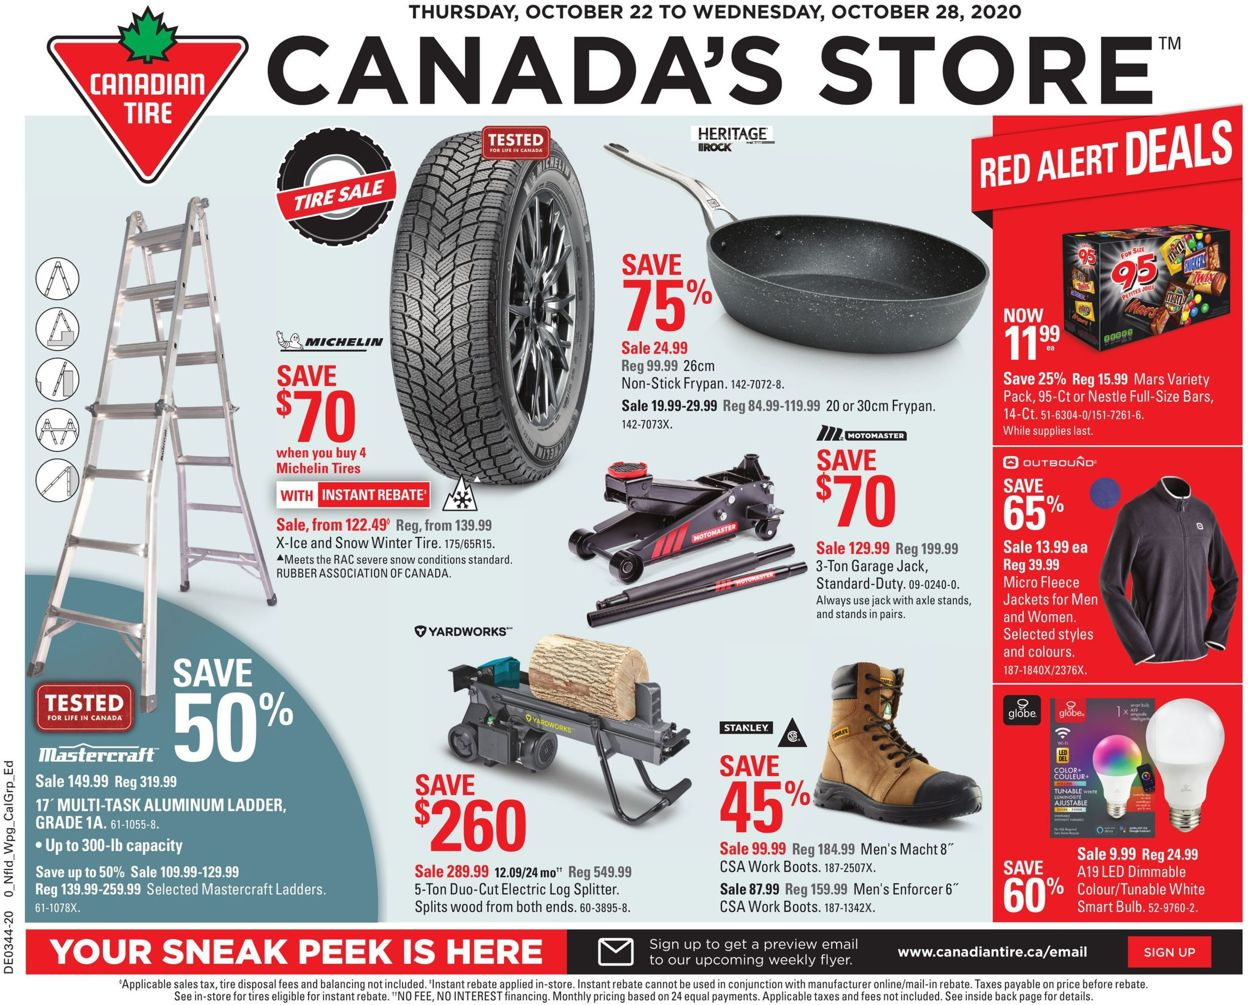 Canadian Tire Flyer - 10/22-10/28/2020